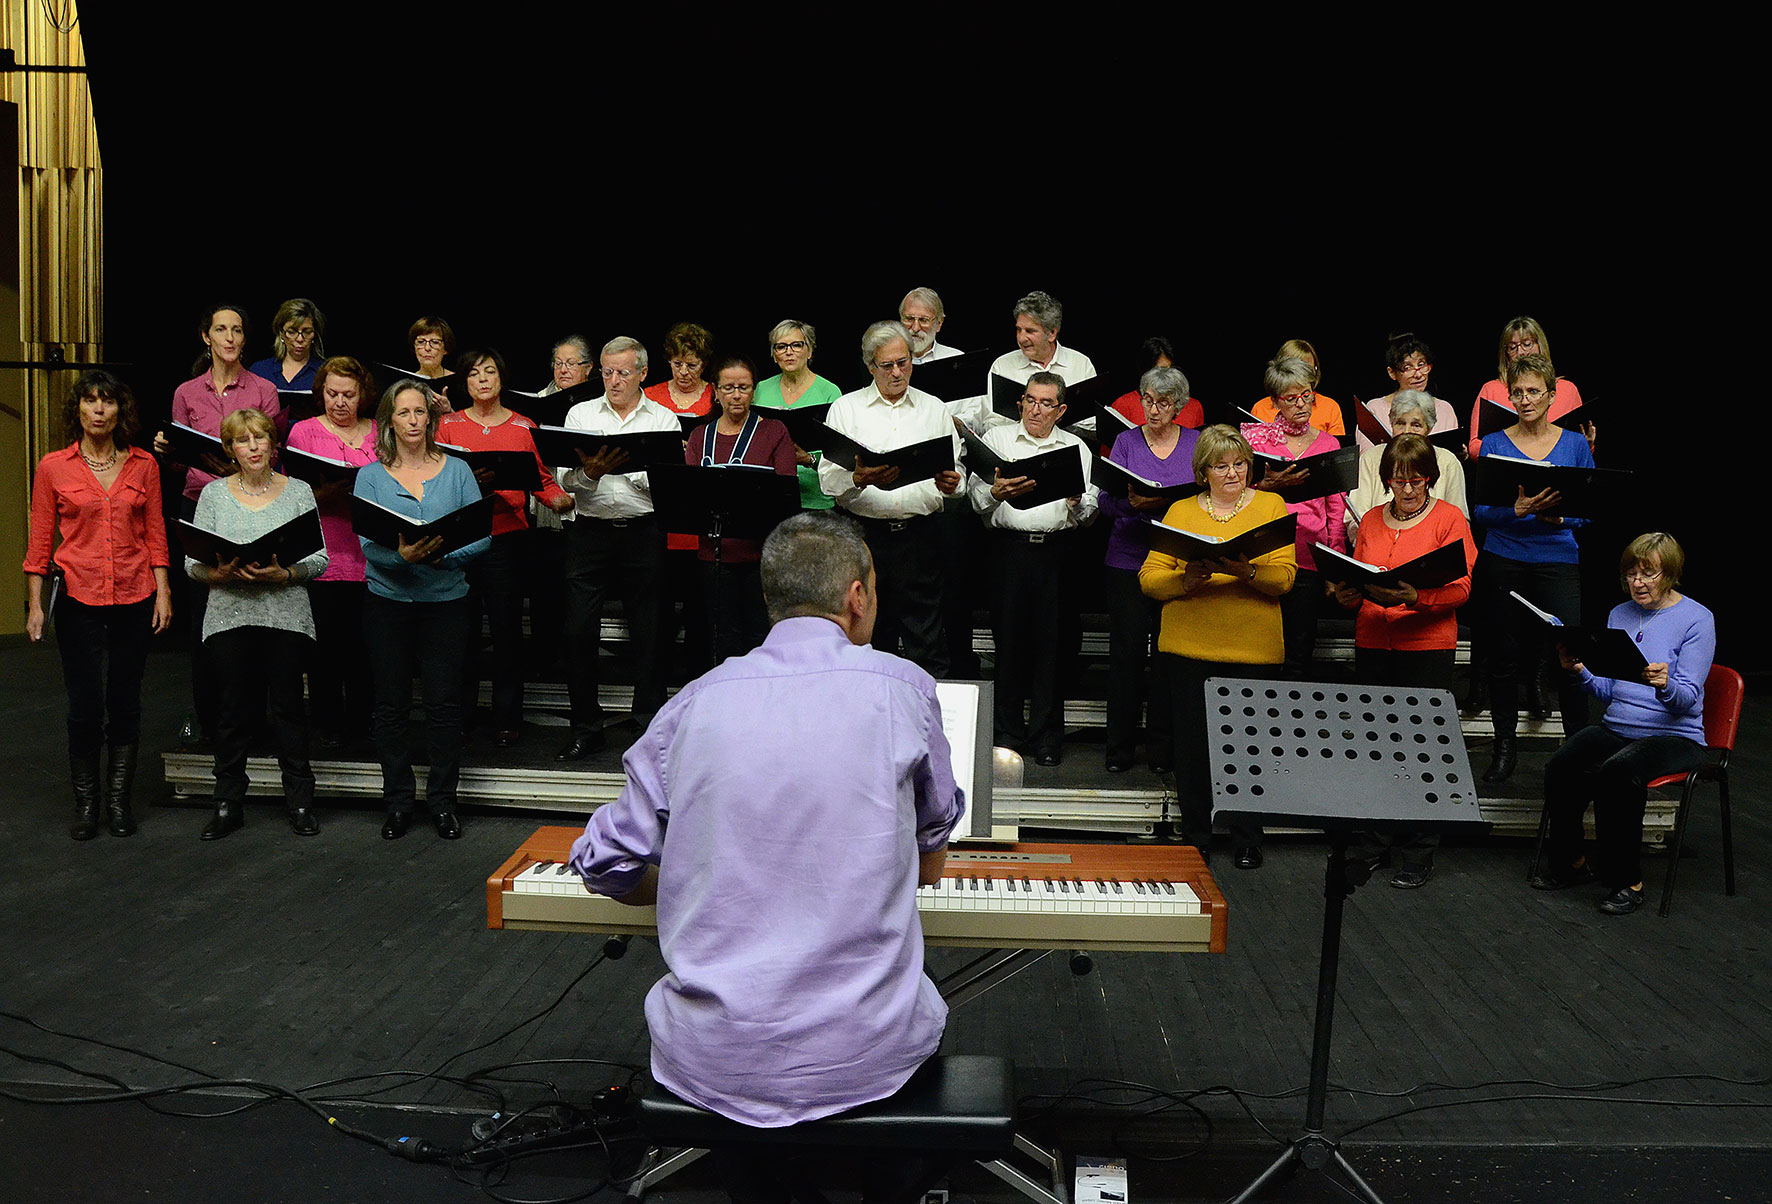 Chorale deodat web 1